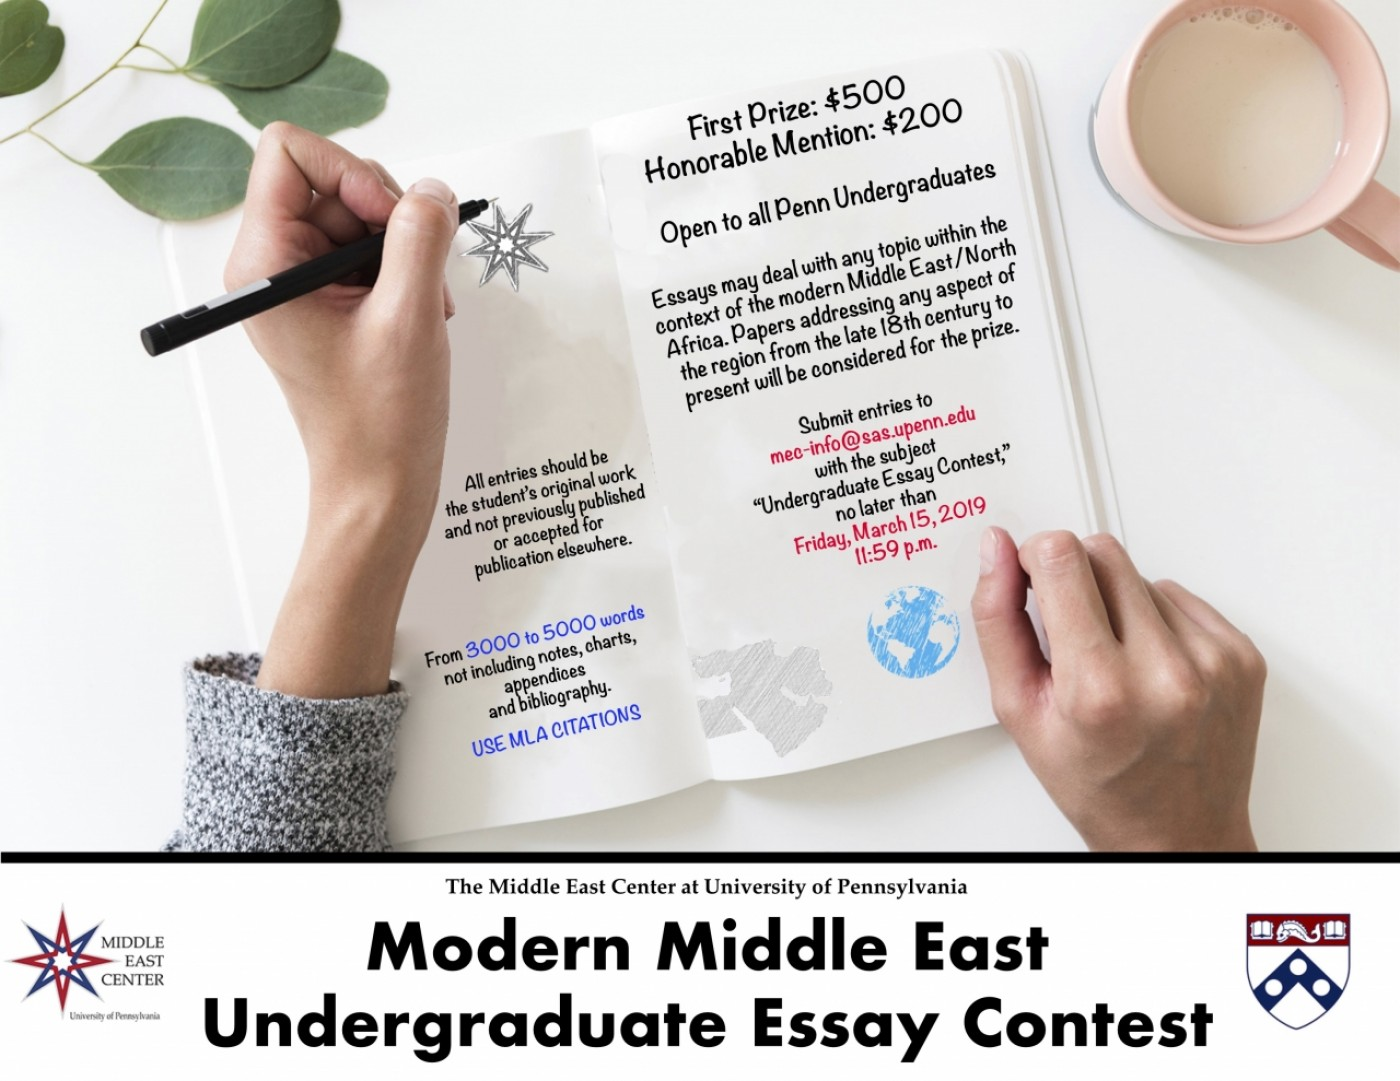 009 Essay Example Undergradessaycontest Remarkable Upenn Prompts Supplement 1400